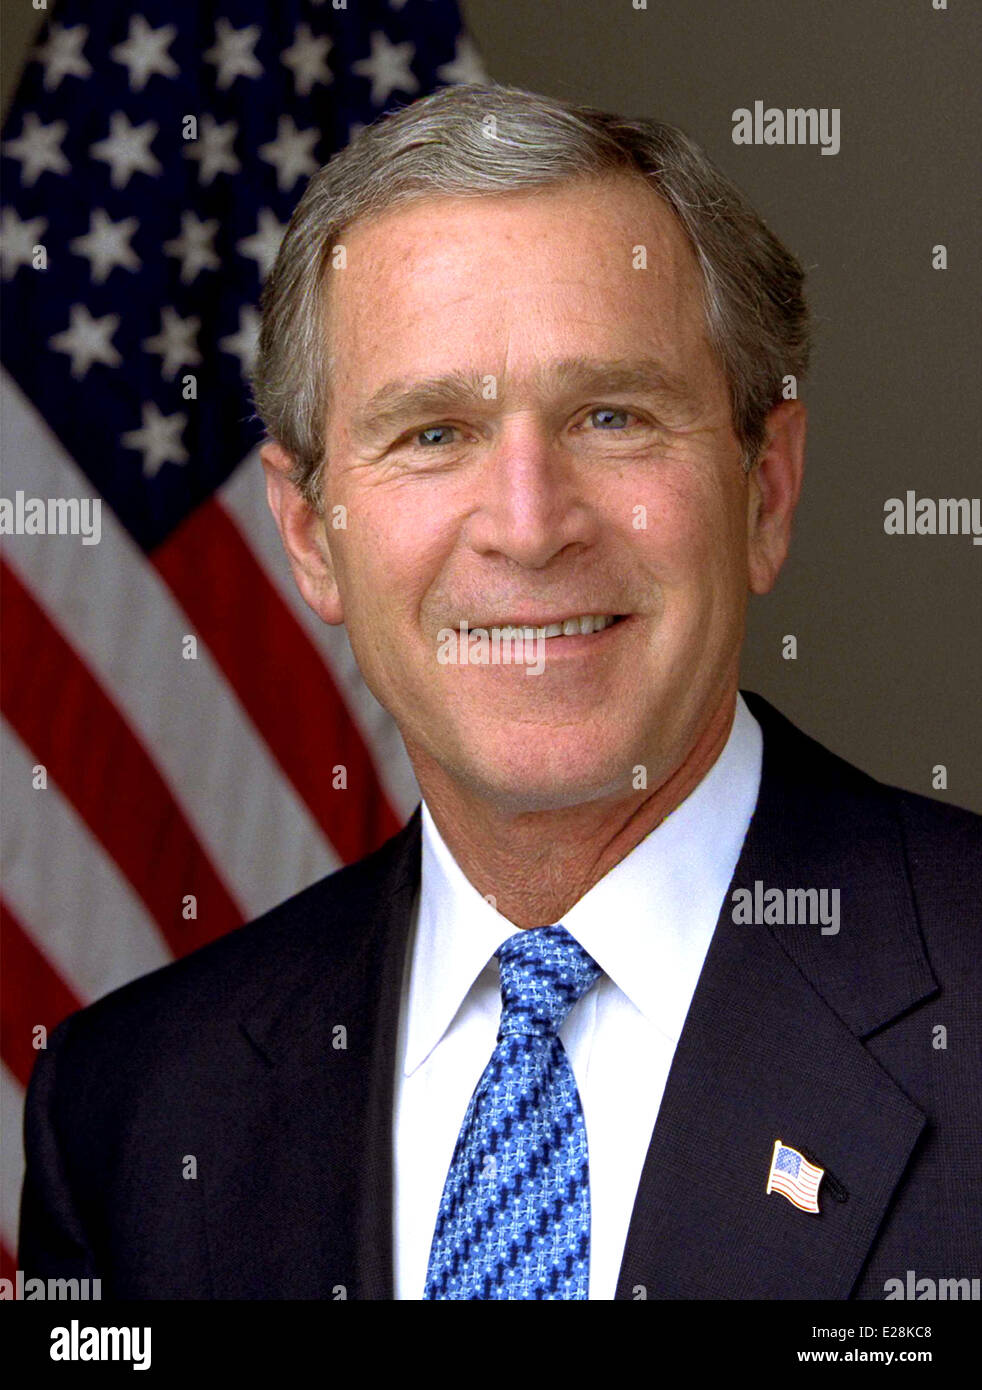 President George W. Bush, 43rd President of the United States Stock Photo